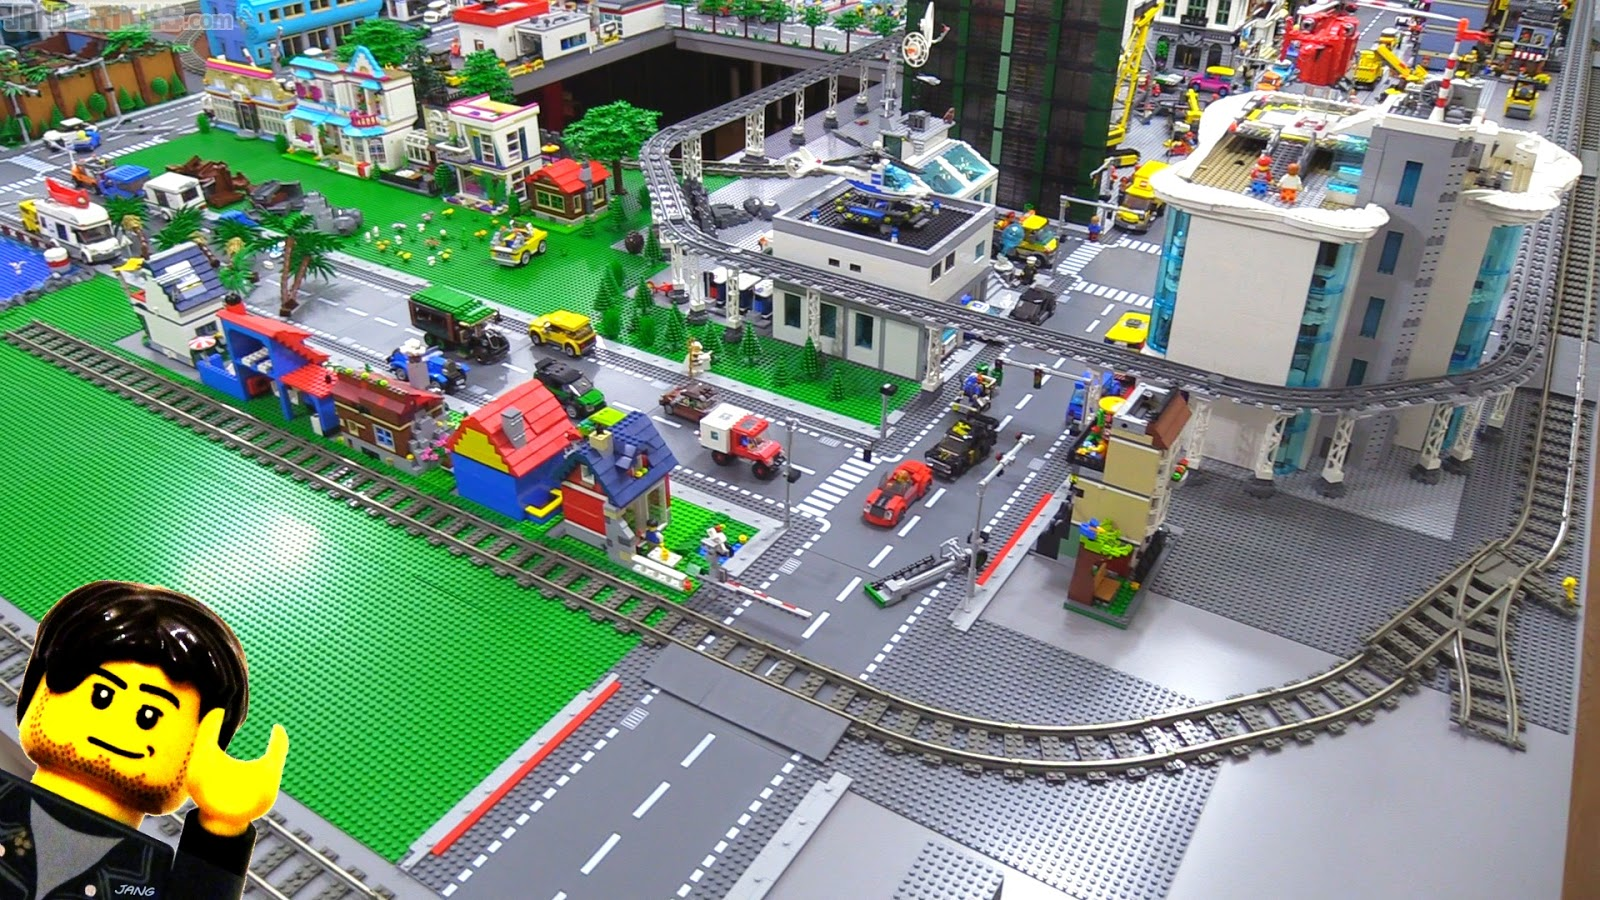 Big changes to the LEGO city begin!